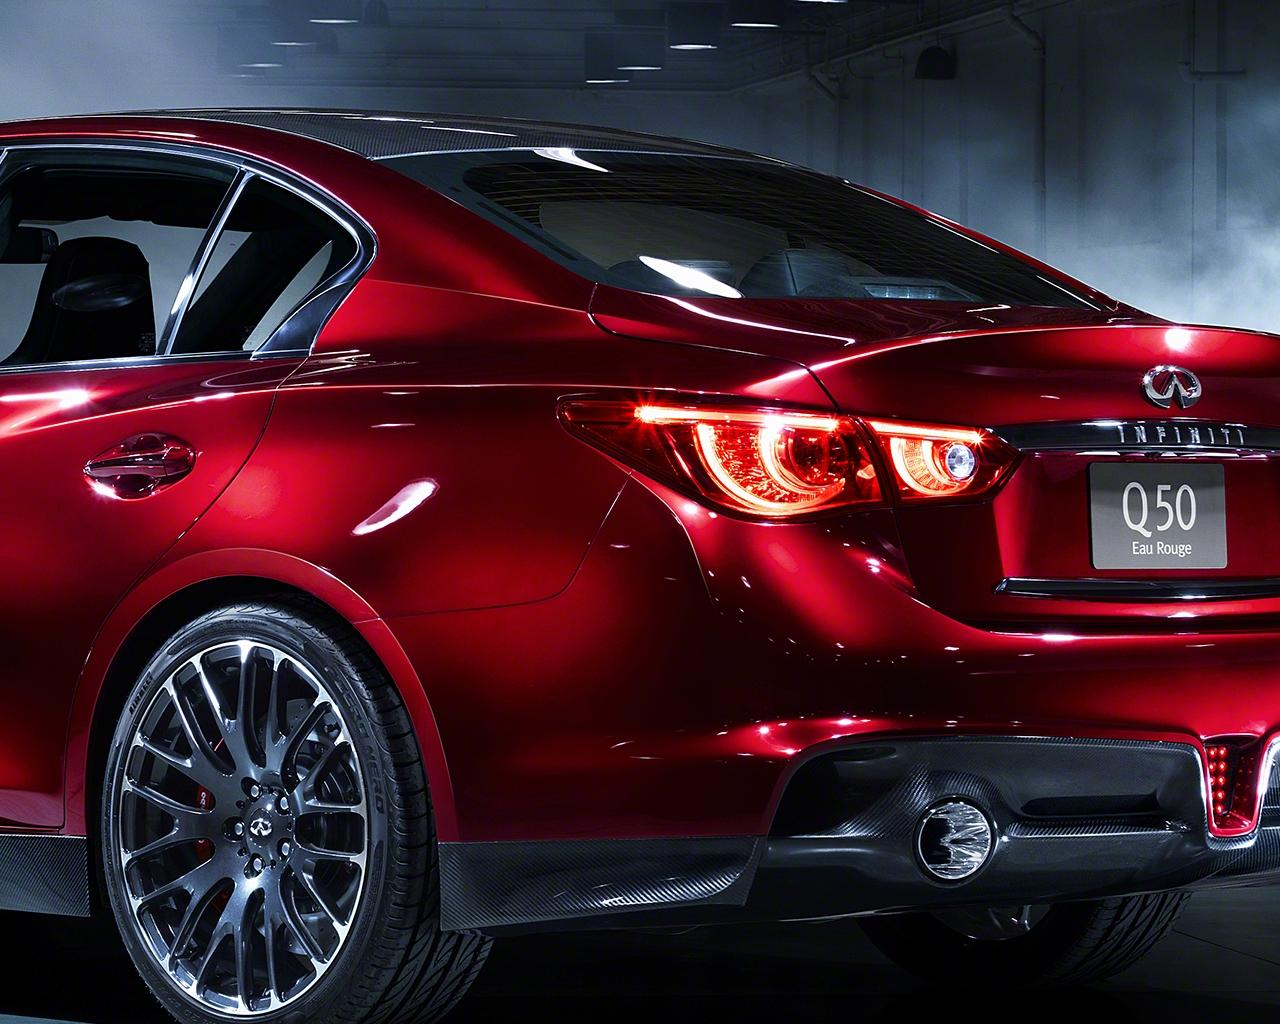 infiniti-q50-eau-rouge-model-line-naias-detroit-2014-0-100_10